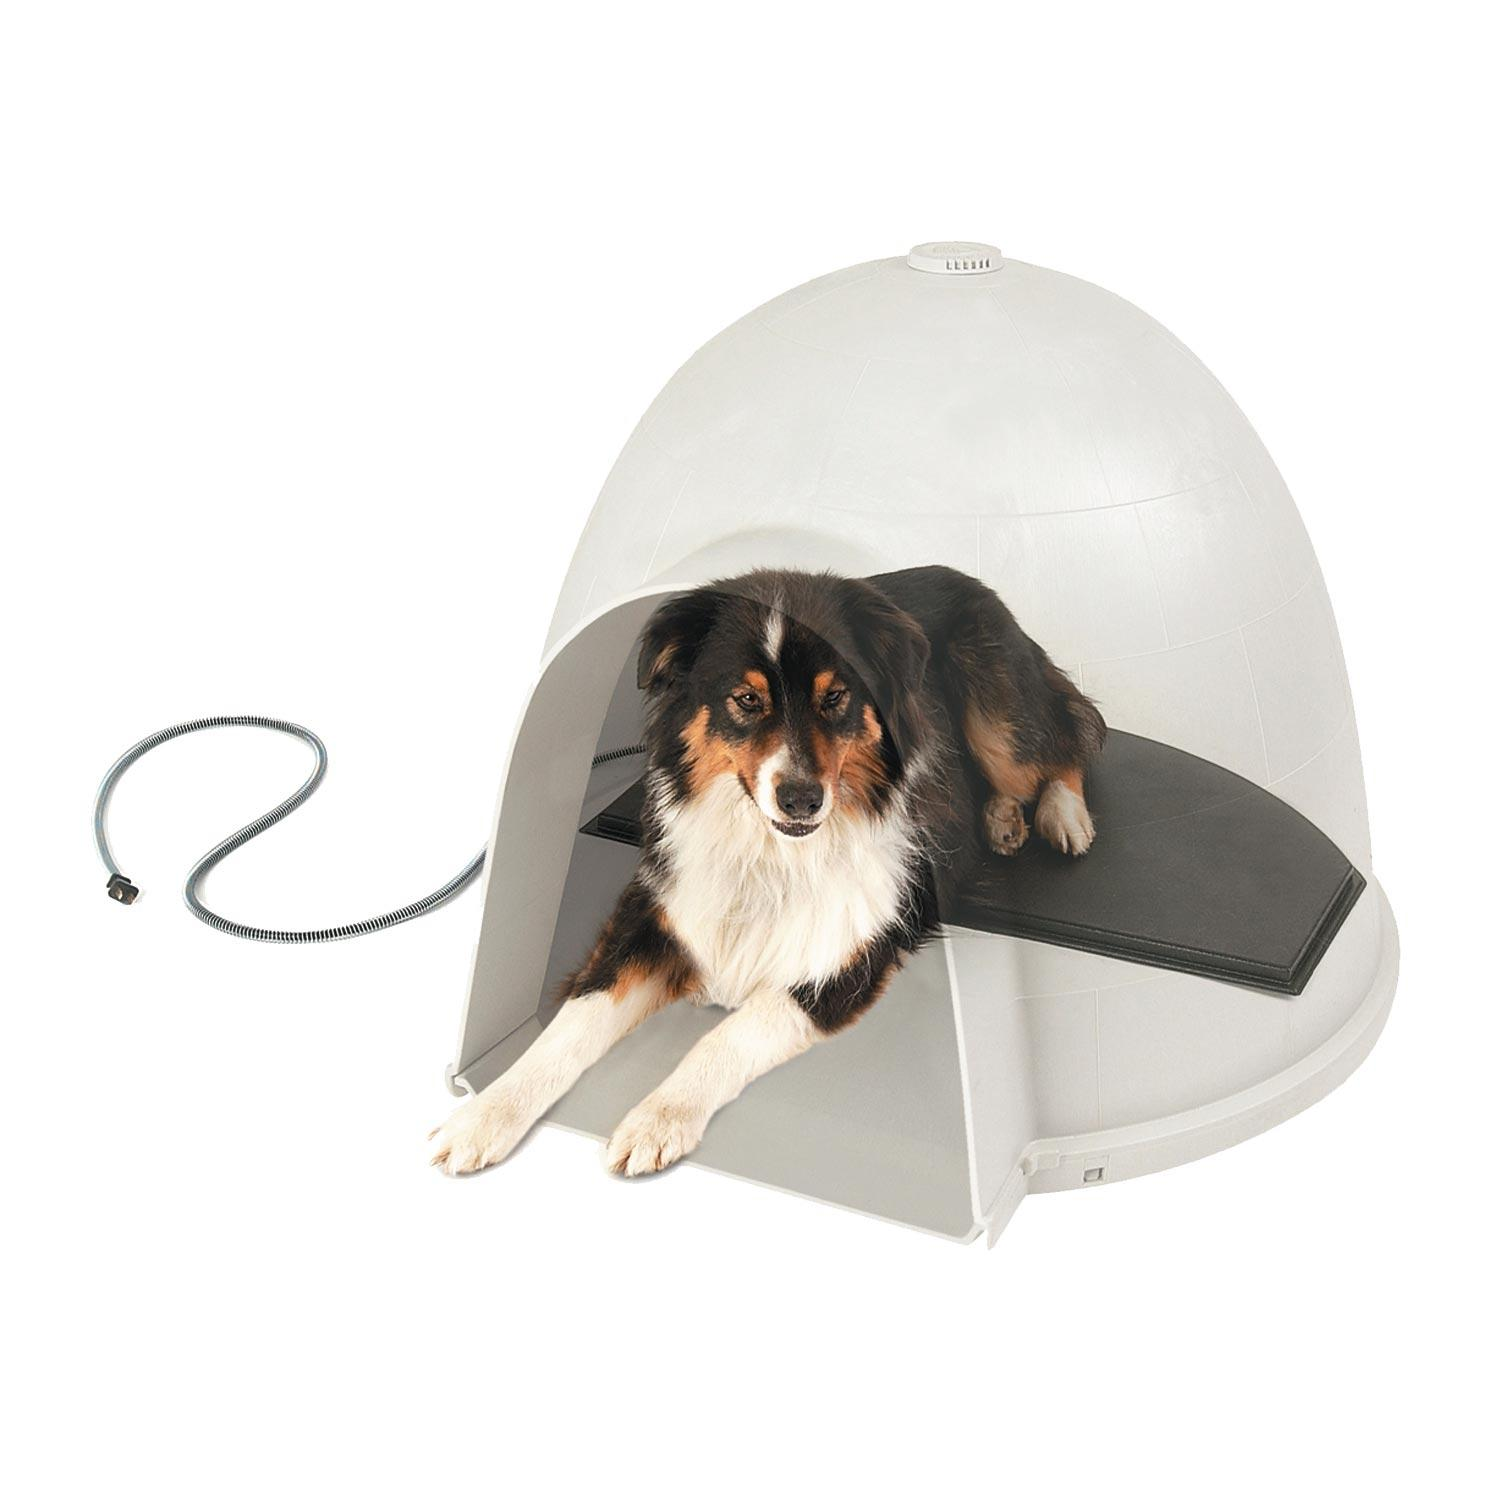 Amazon.com : K&H Lectro-Kennel Igloo-Style Heated Pad